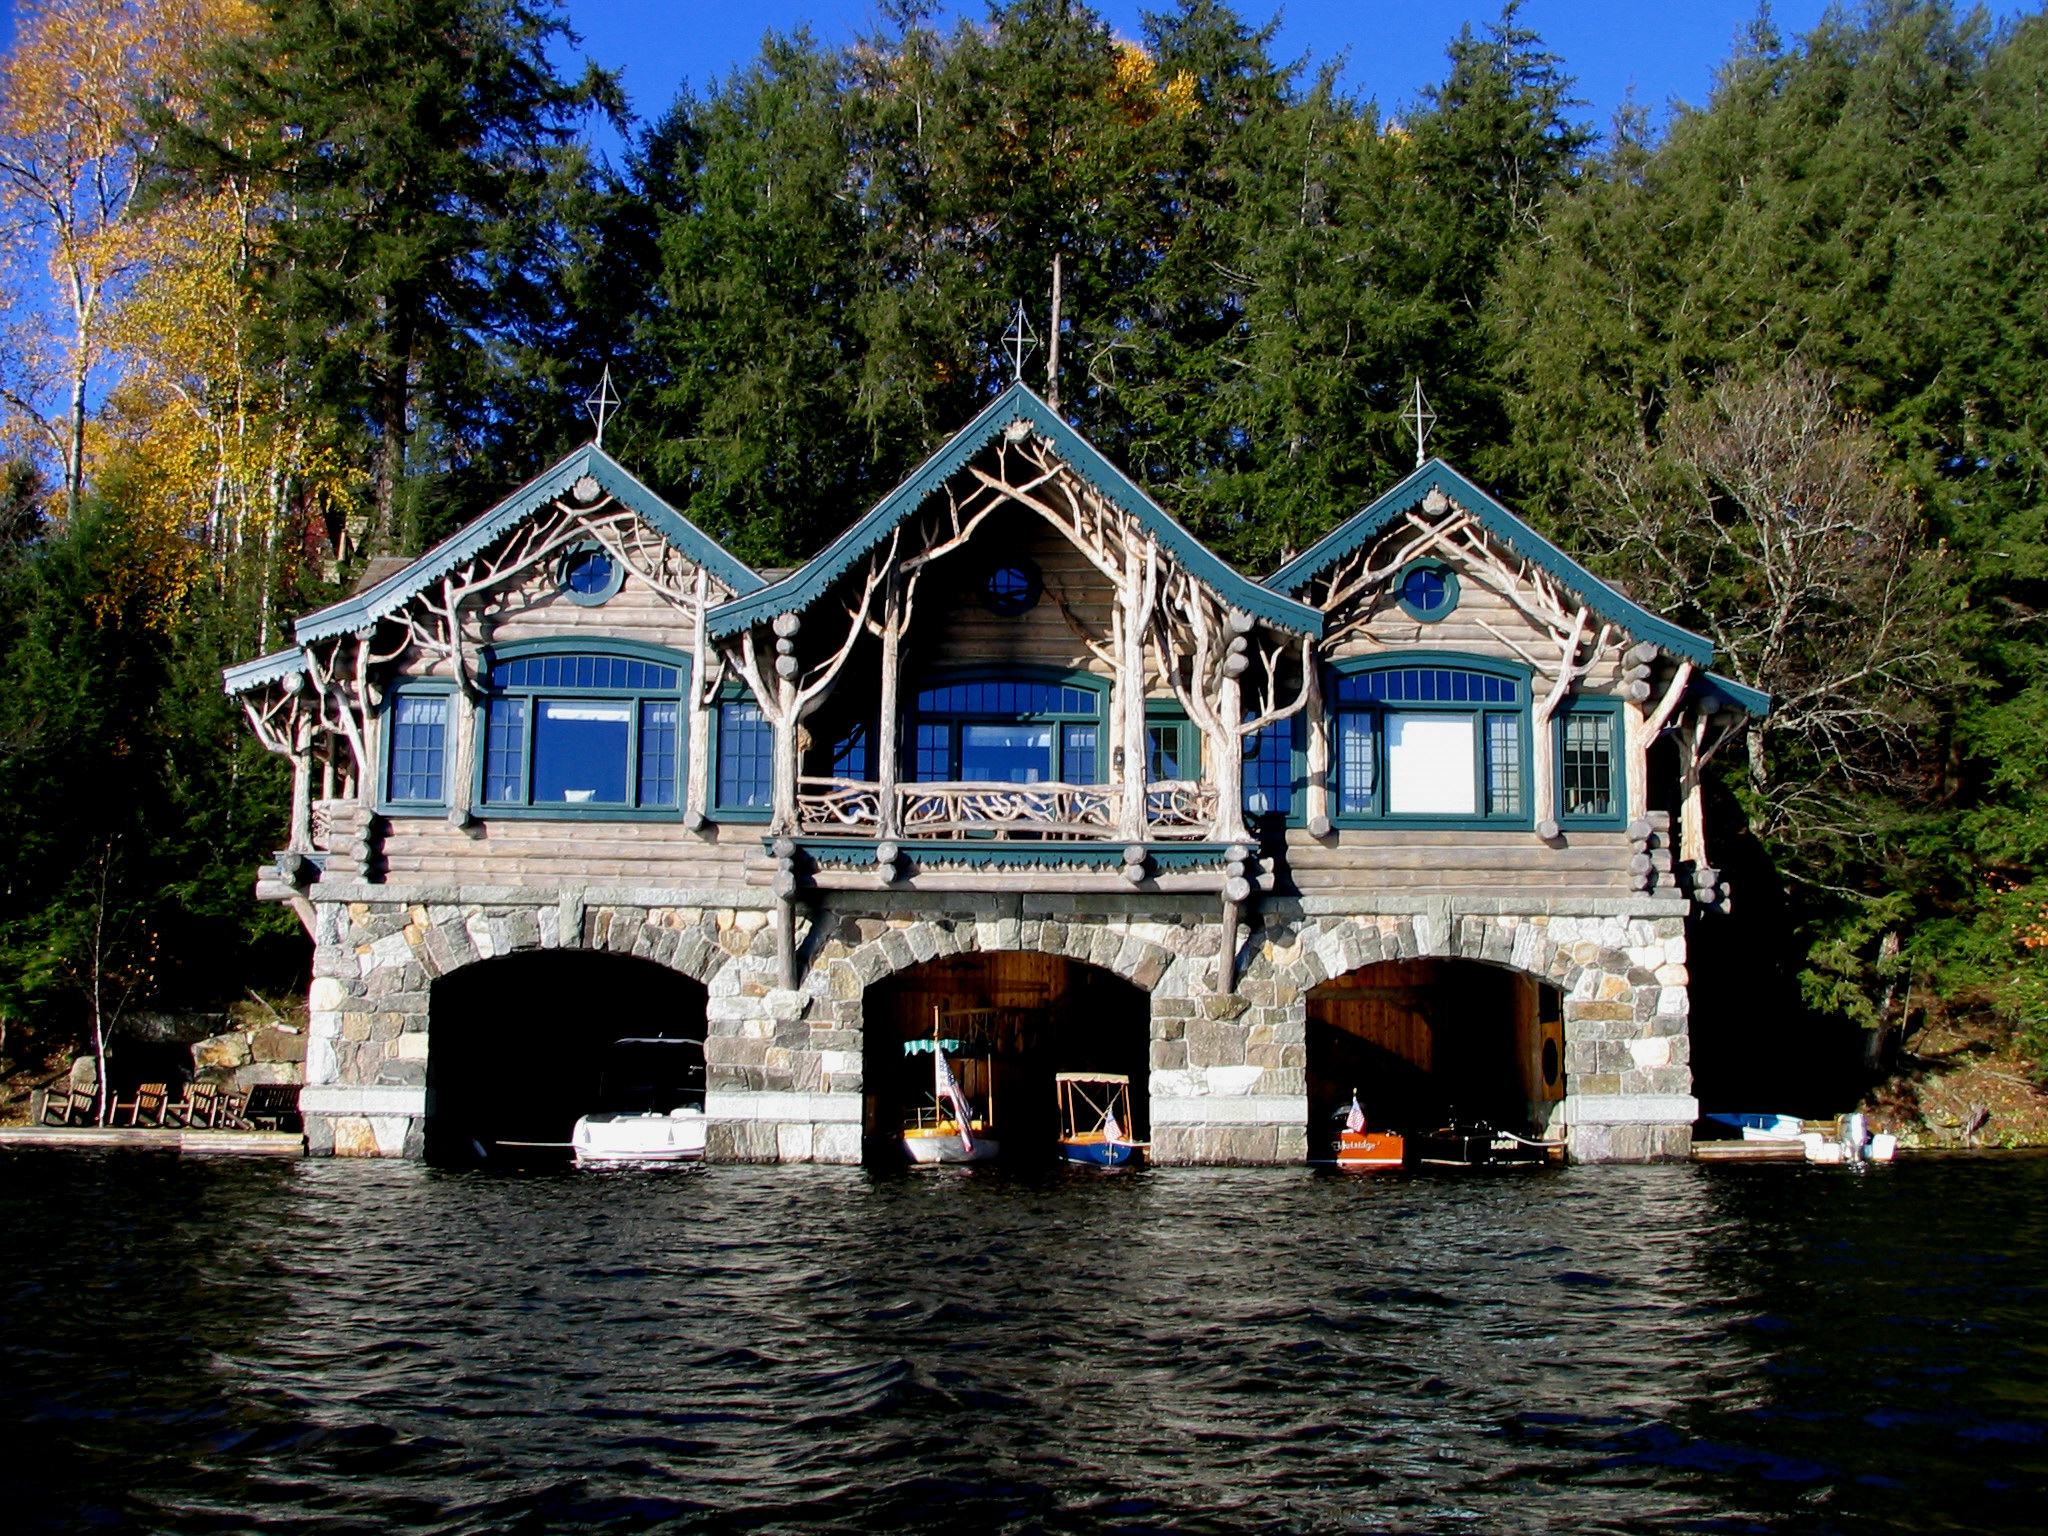 File:Boathouse 2 at Topridge.jpg - Wikimedia Commons